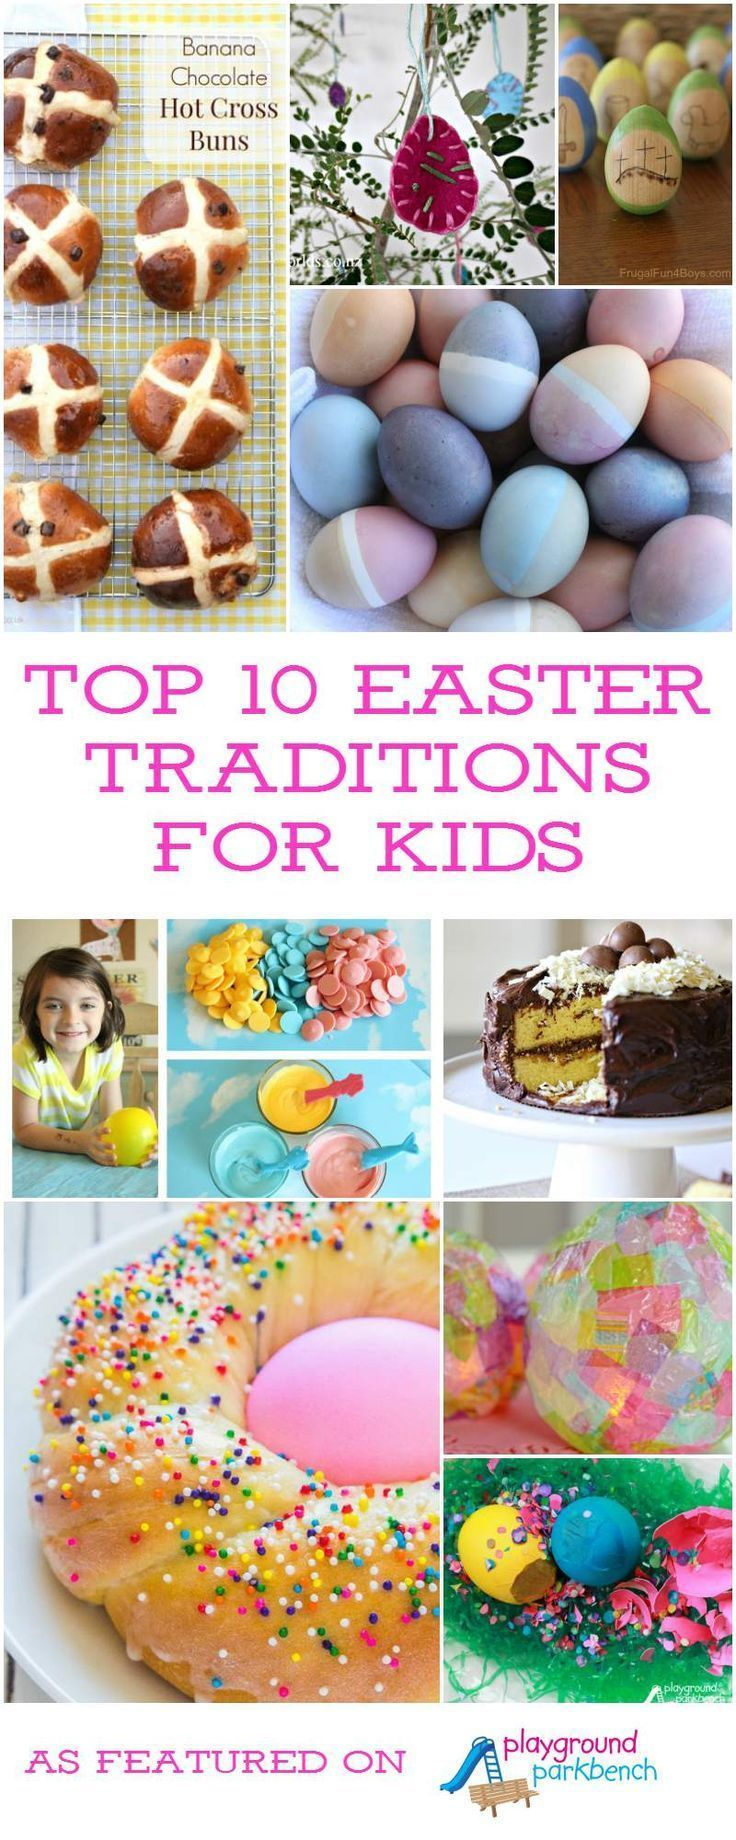 Celebrate Easter Sunday with these fun, festive, unique and creative Easter traditions for kids